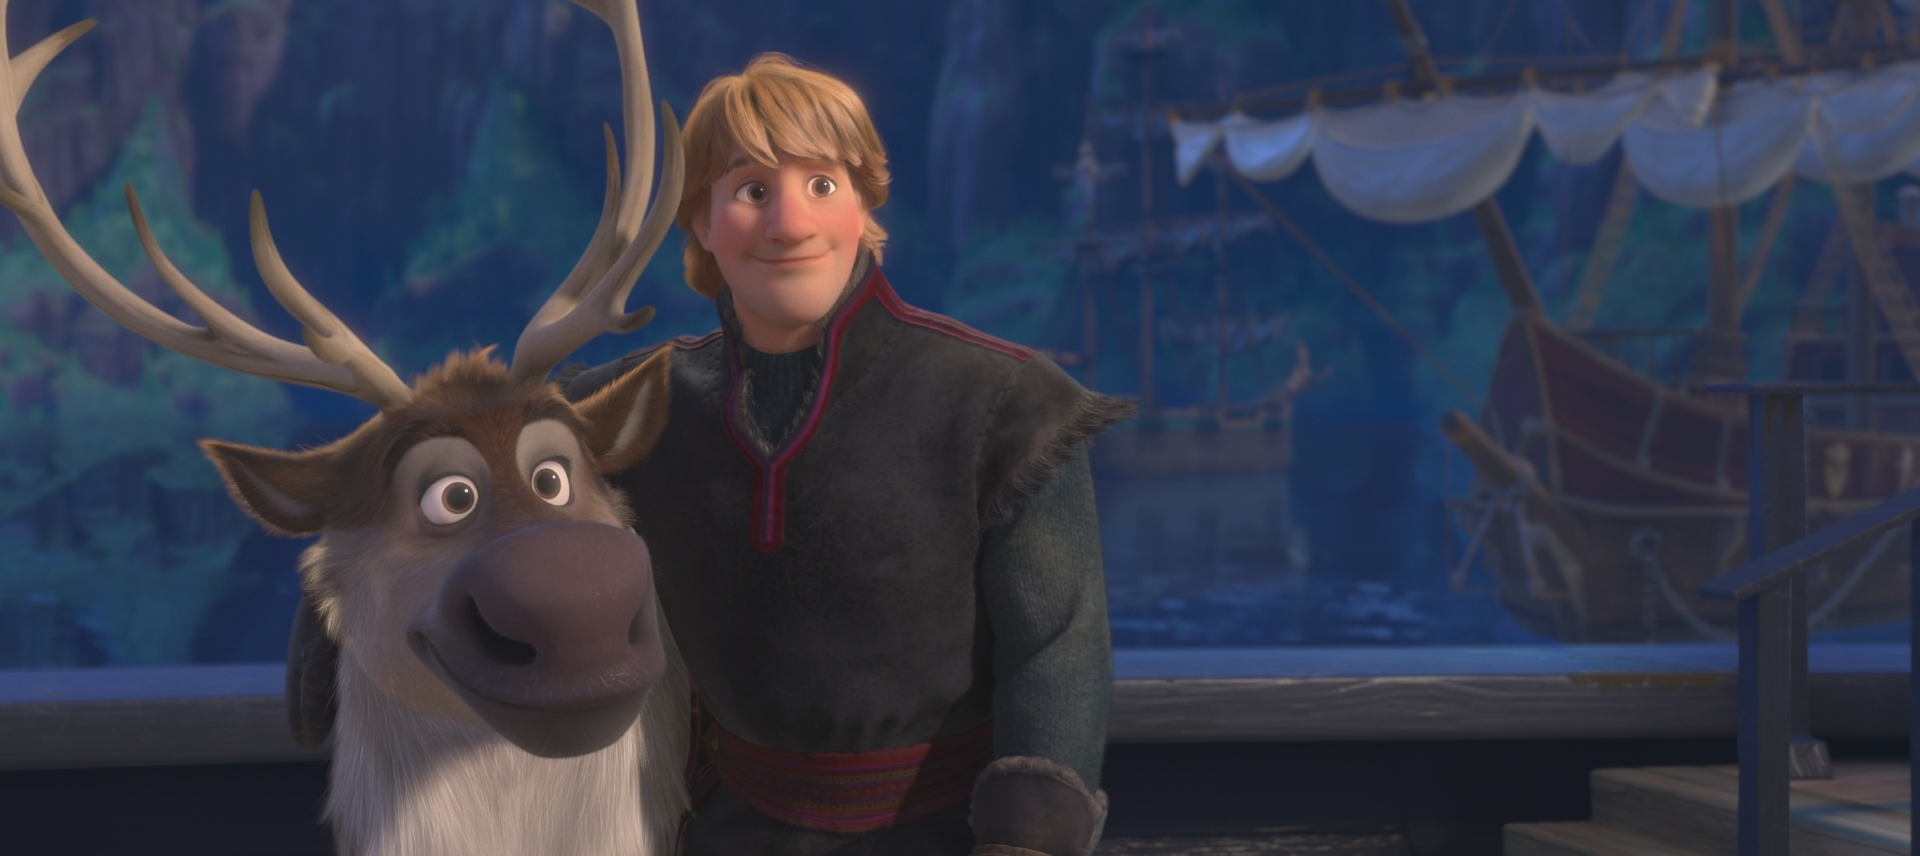 Kristoff wiki once upon a time fandom powered by wikia - Sven dans la reine des neiges ...